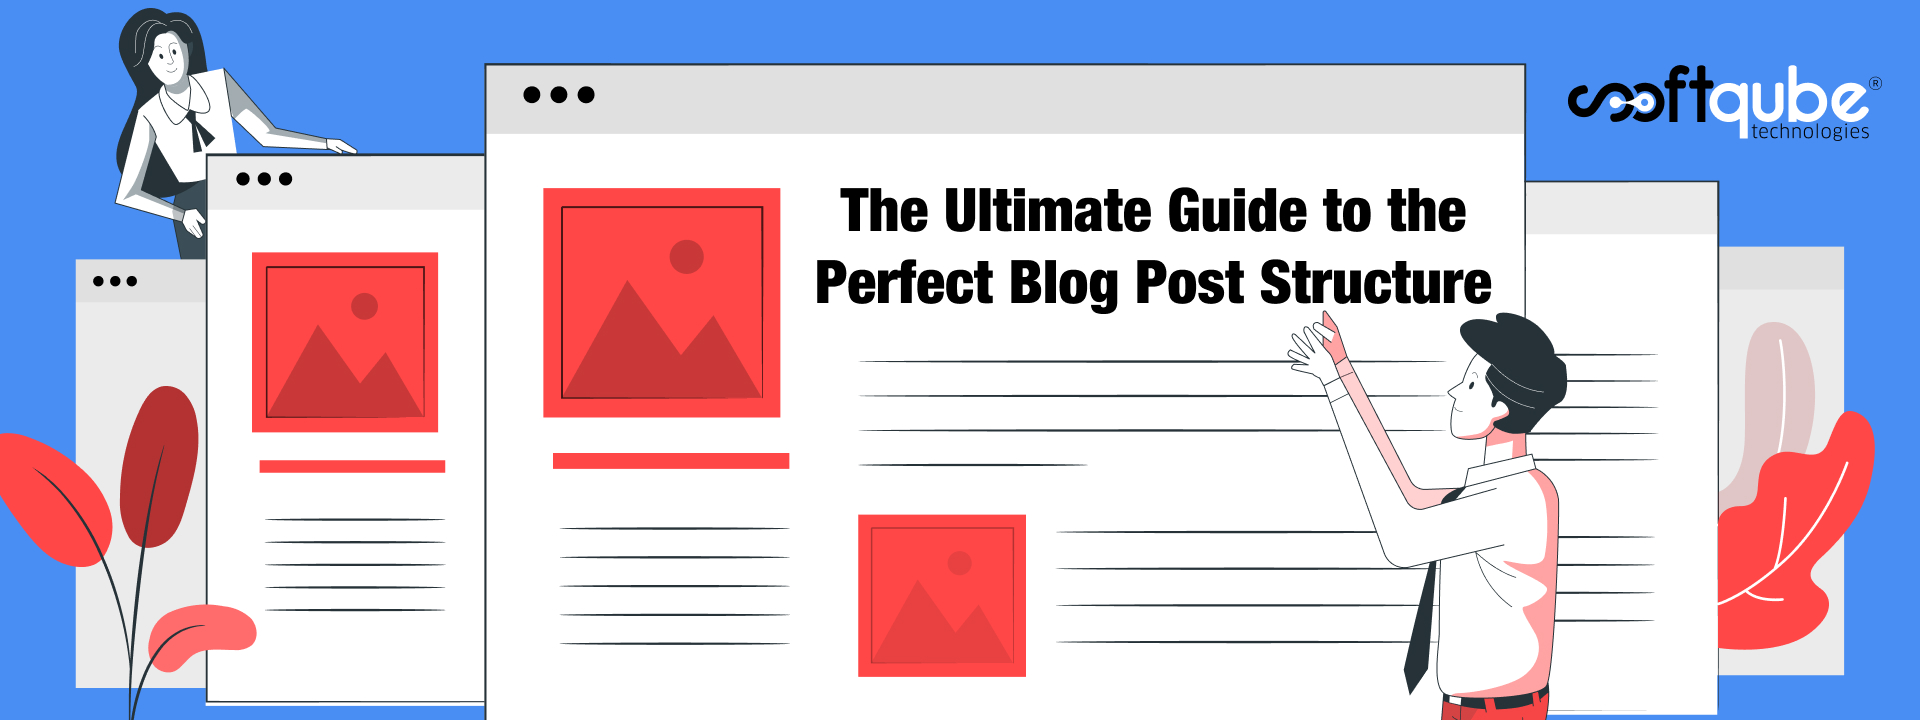 The Ultimate Guide to Perfect Blog Post Structure